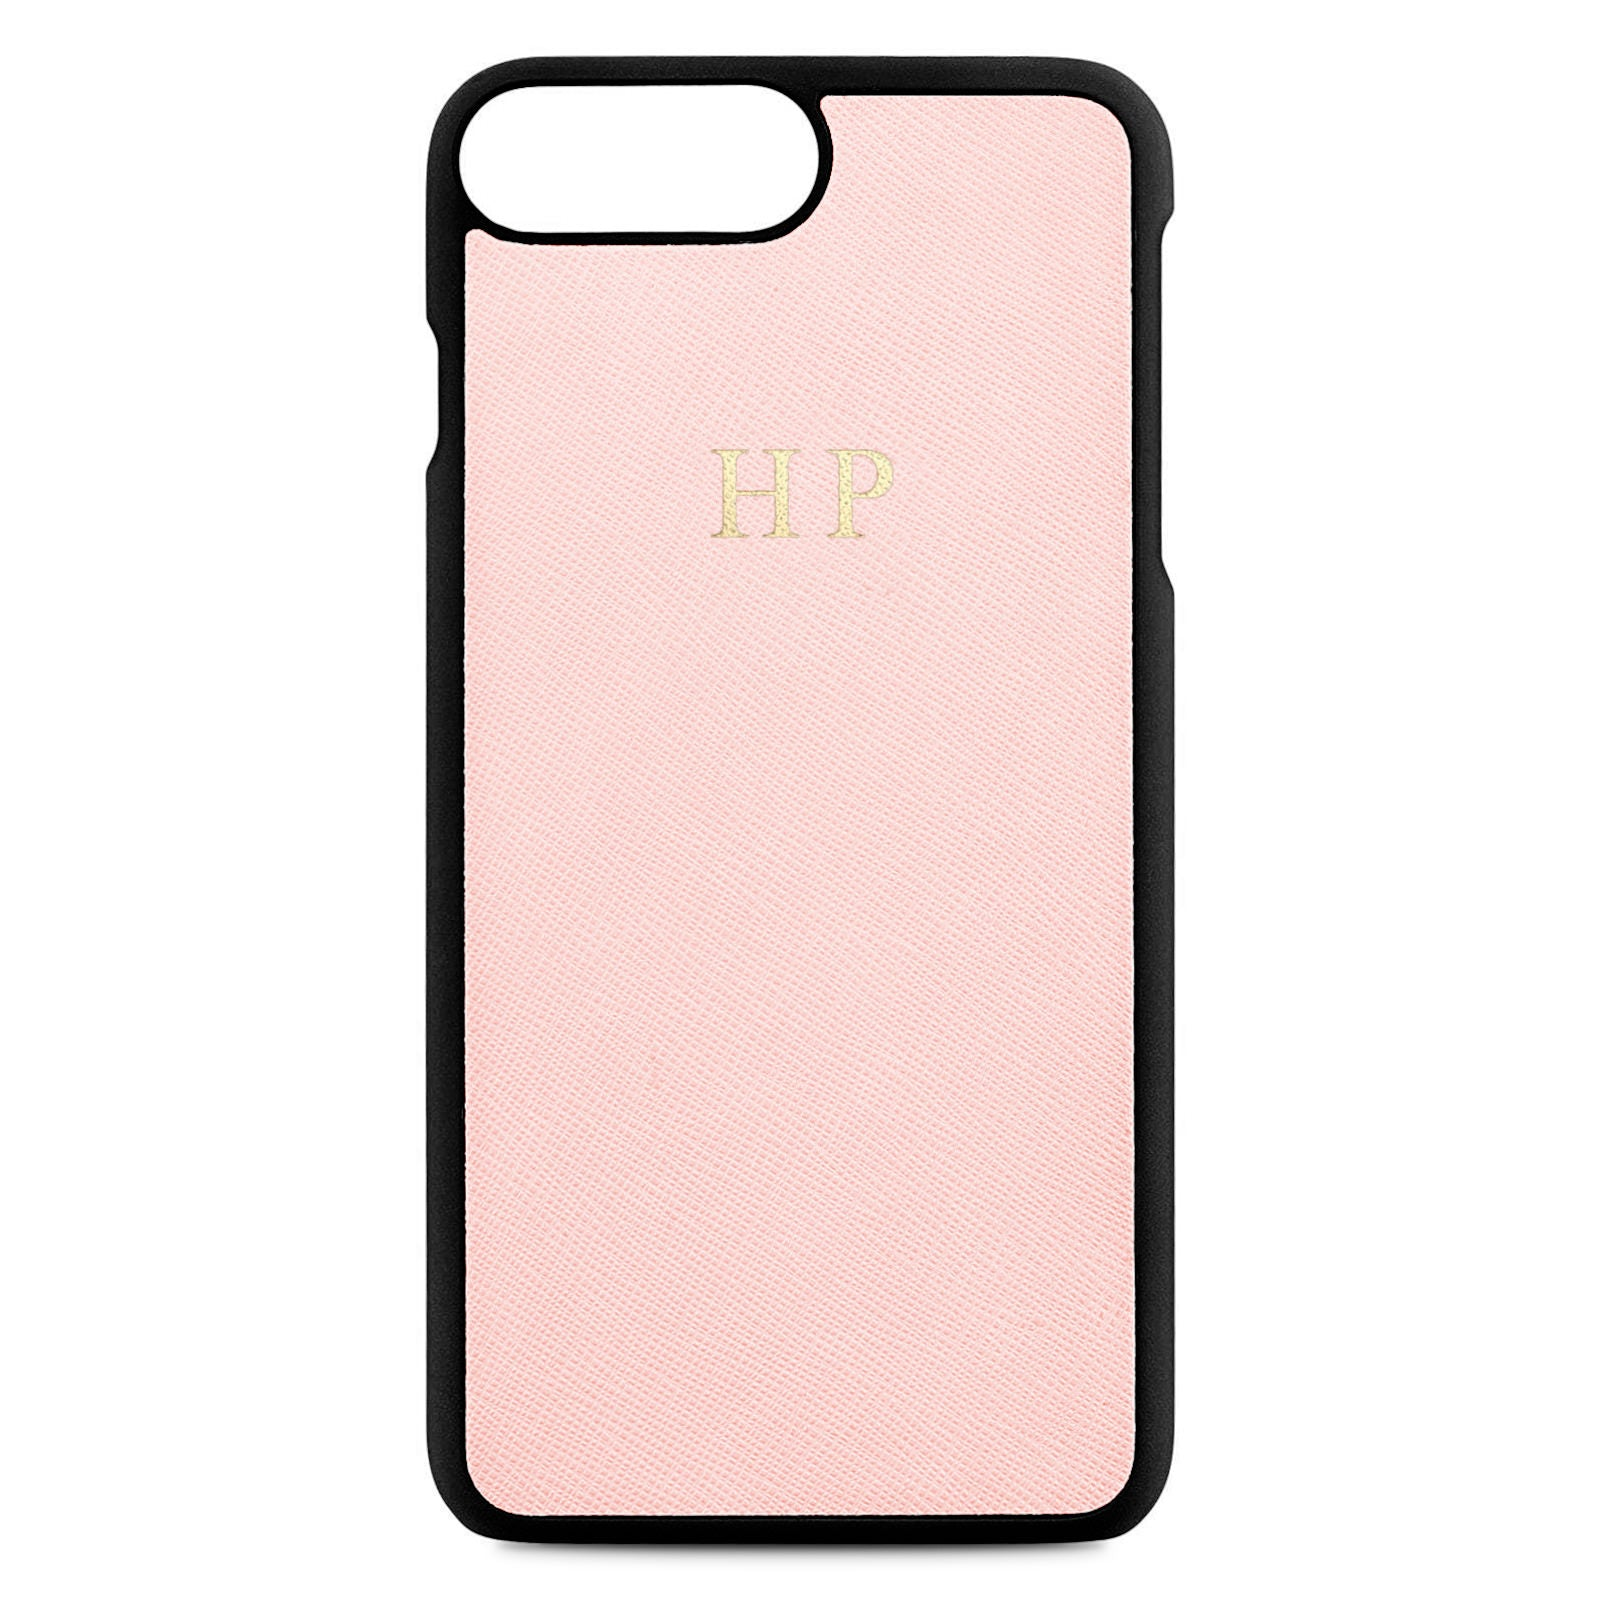 Personalised Pink Saffiano Leather iPhone 8 Plus Case